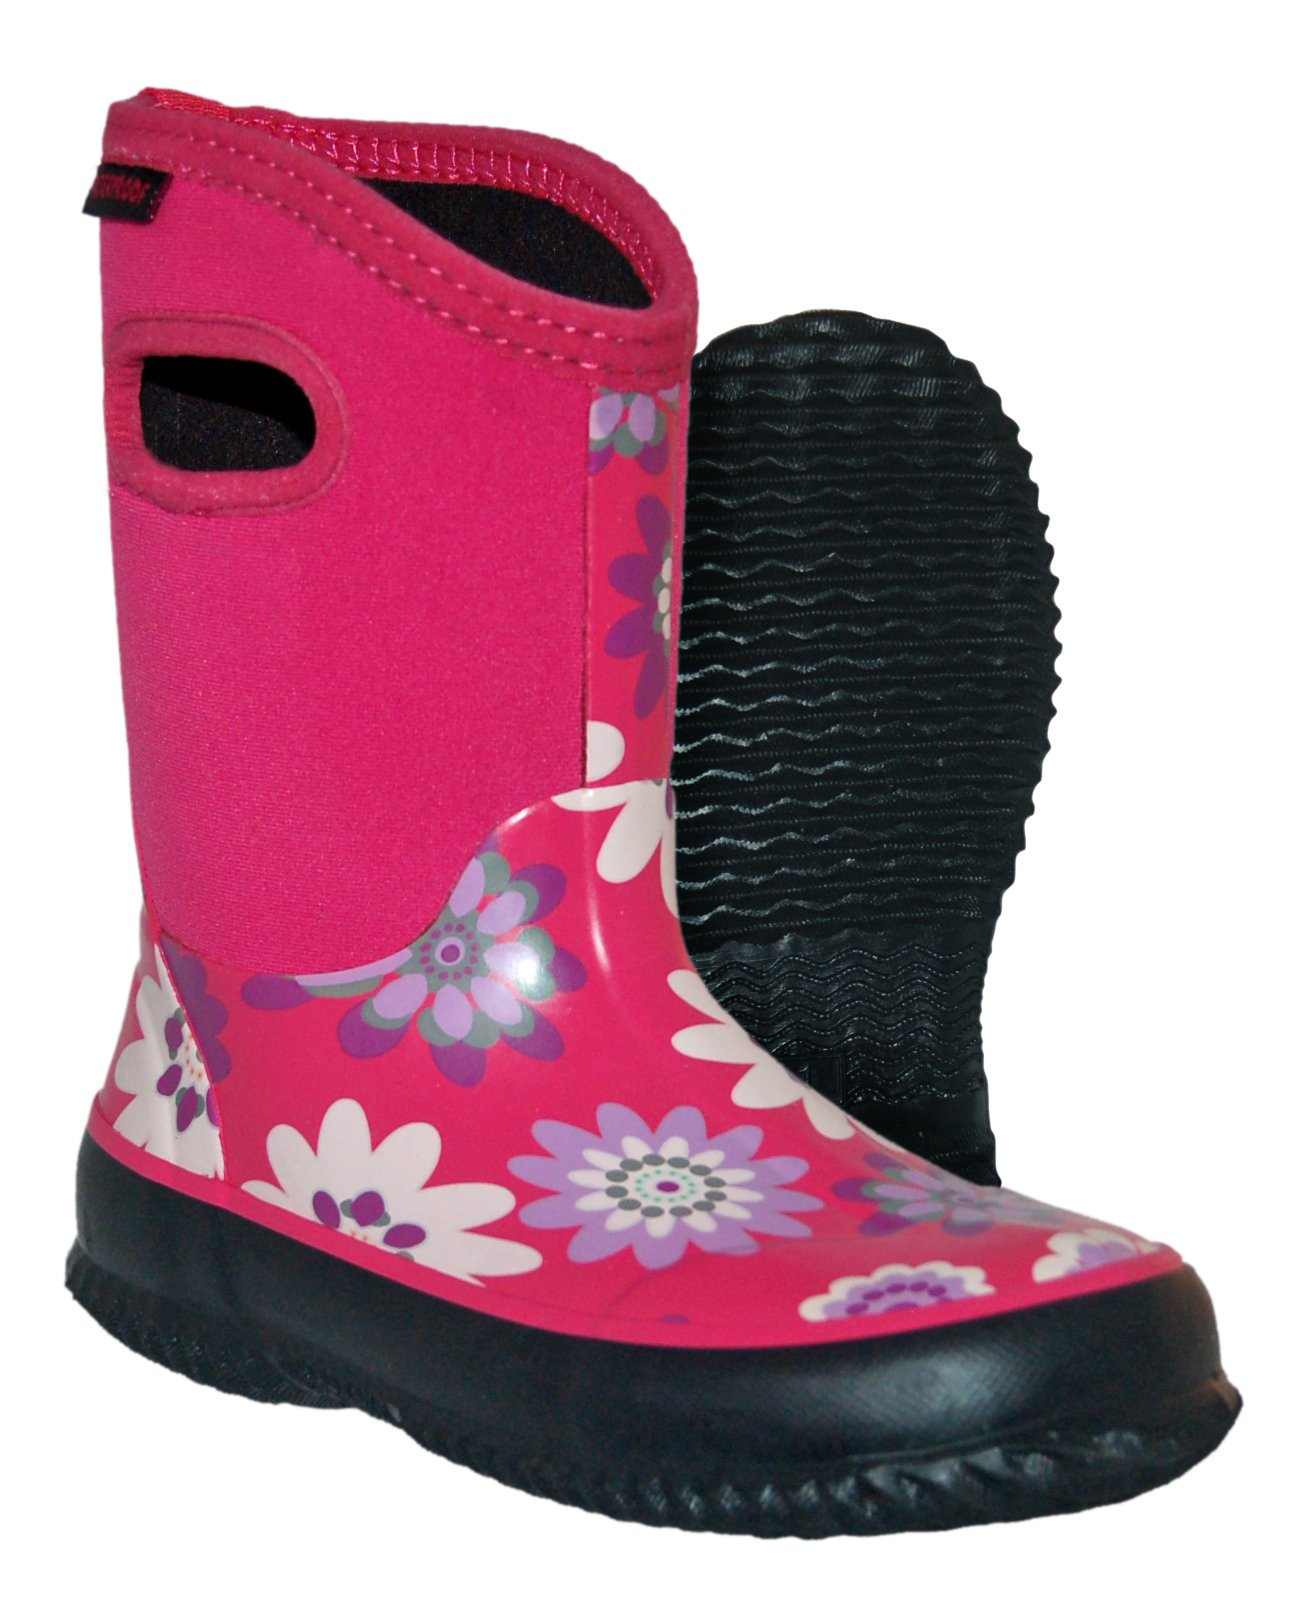 Itasca Girls Youth Bayou Rubber/Neoprene Waterproof Boots Rain, Pink Flowers, 6.0 Standard US Width US Big Kid